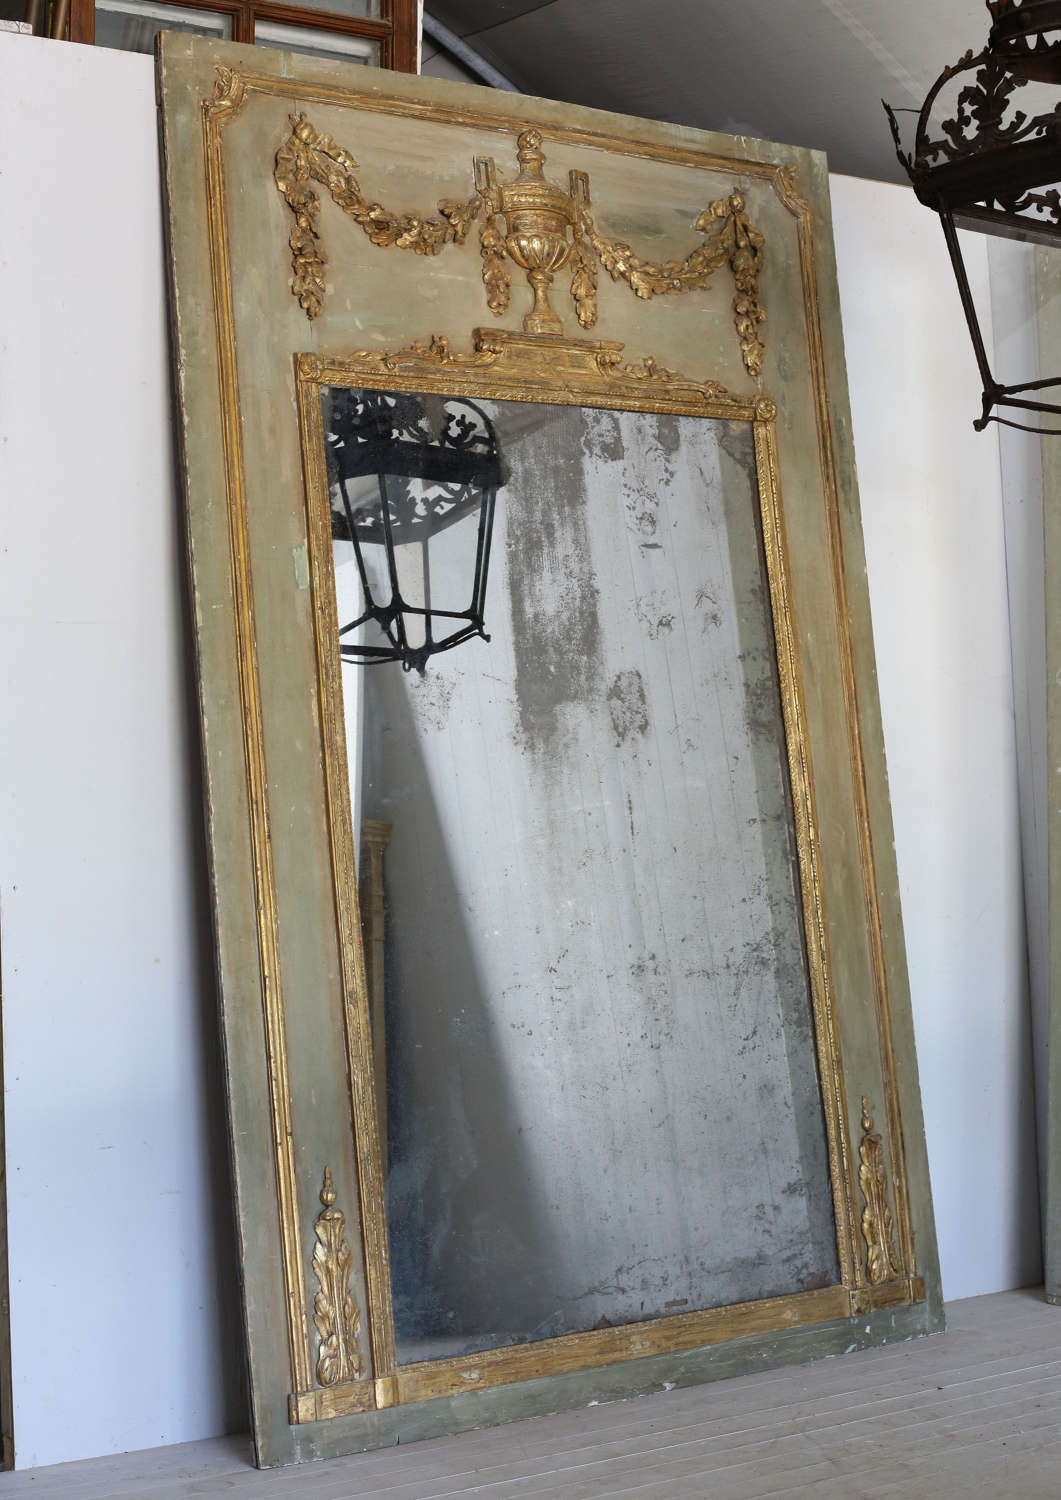 18th century French trumeau mirror